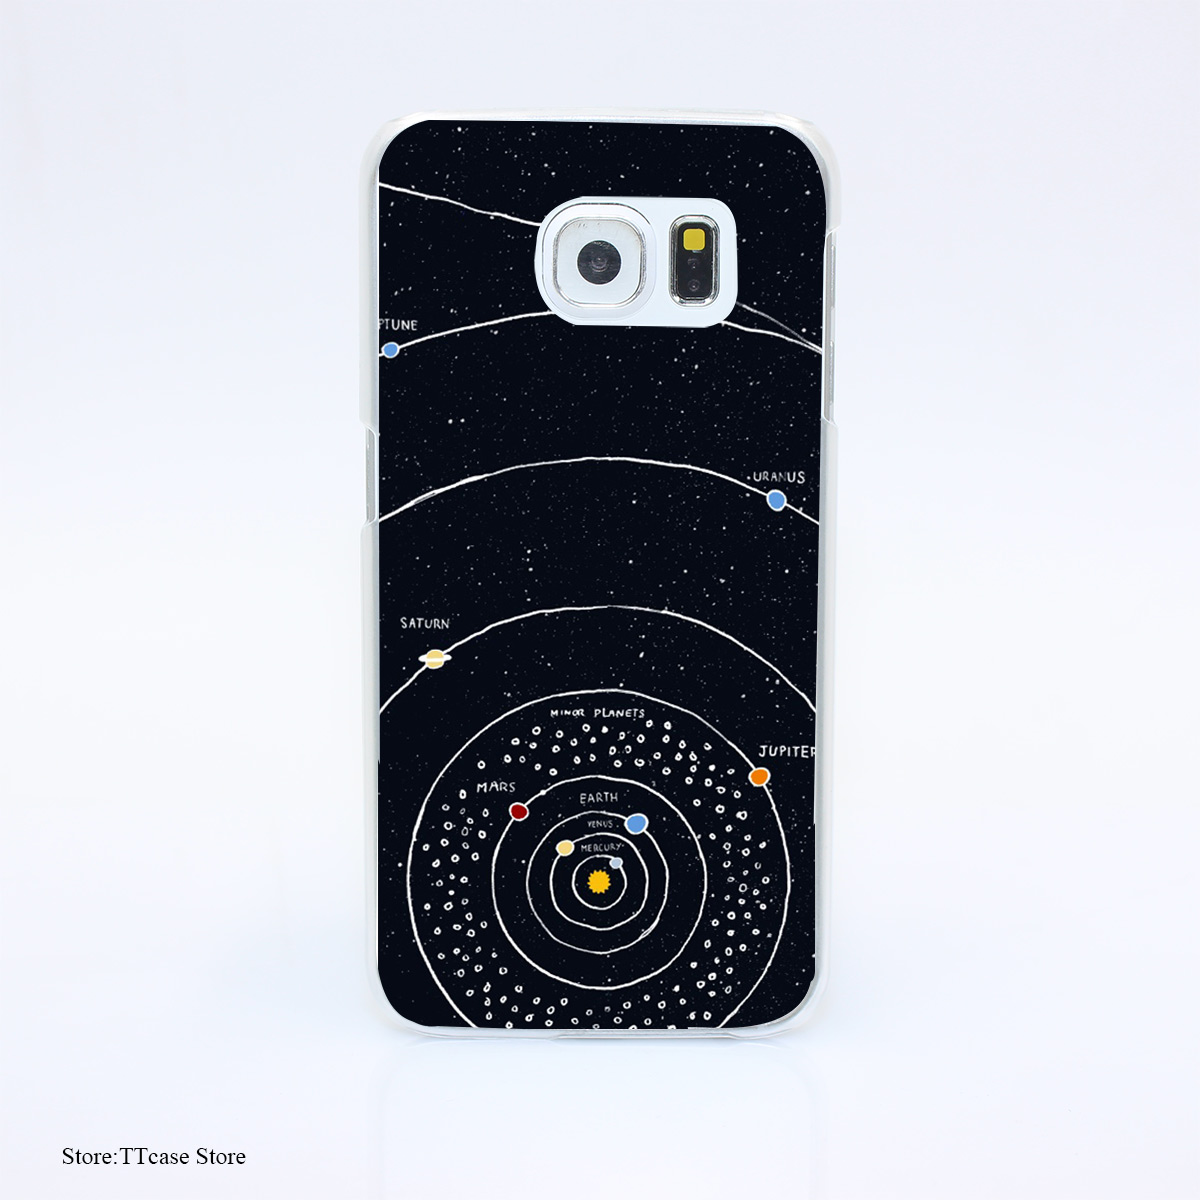 3065G Solar System Drh Print Hard Transparent font b Case b font Cover for Galaxy S3